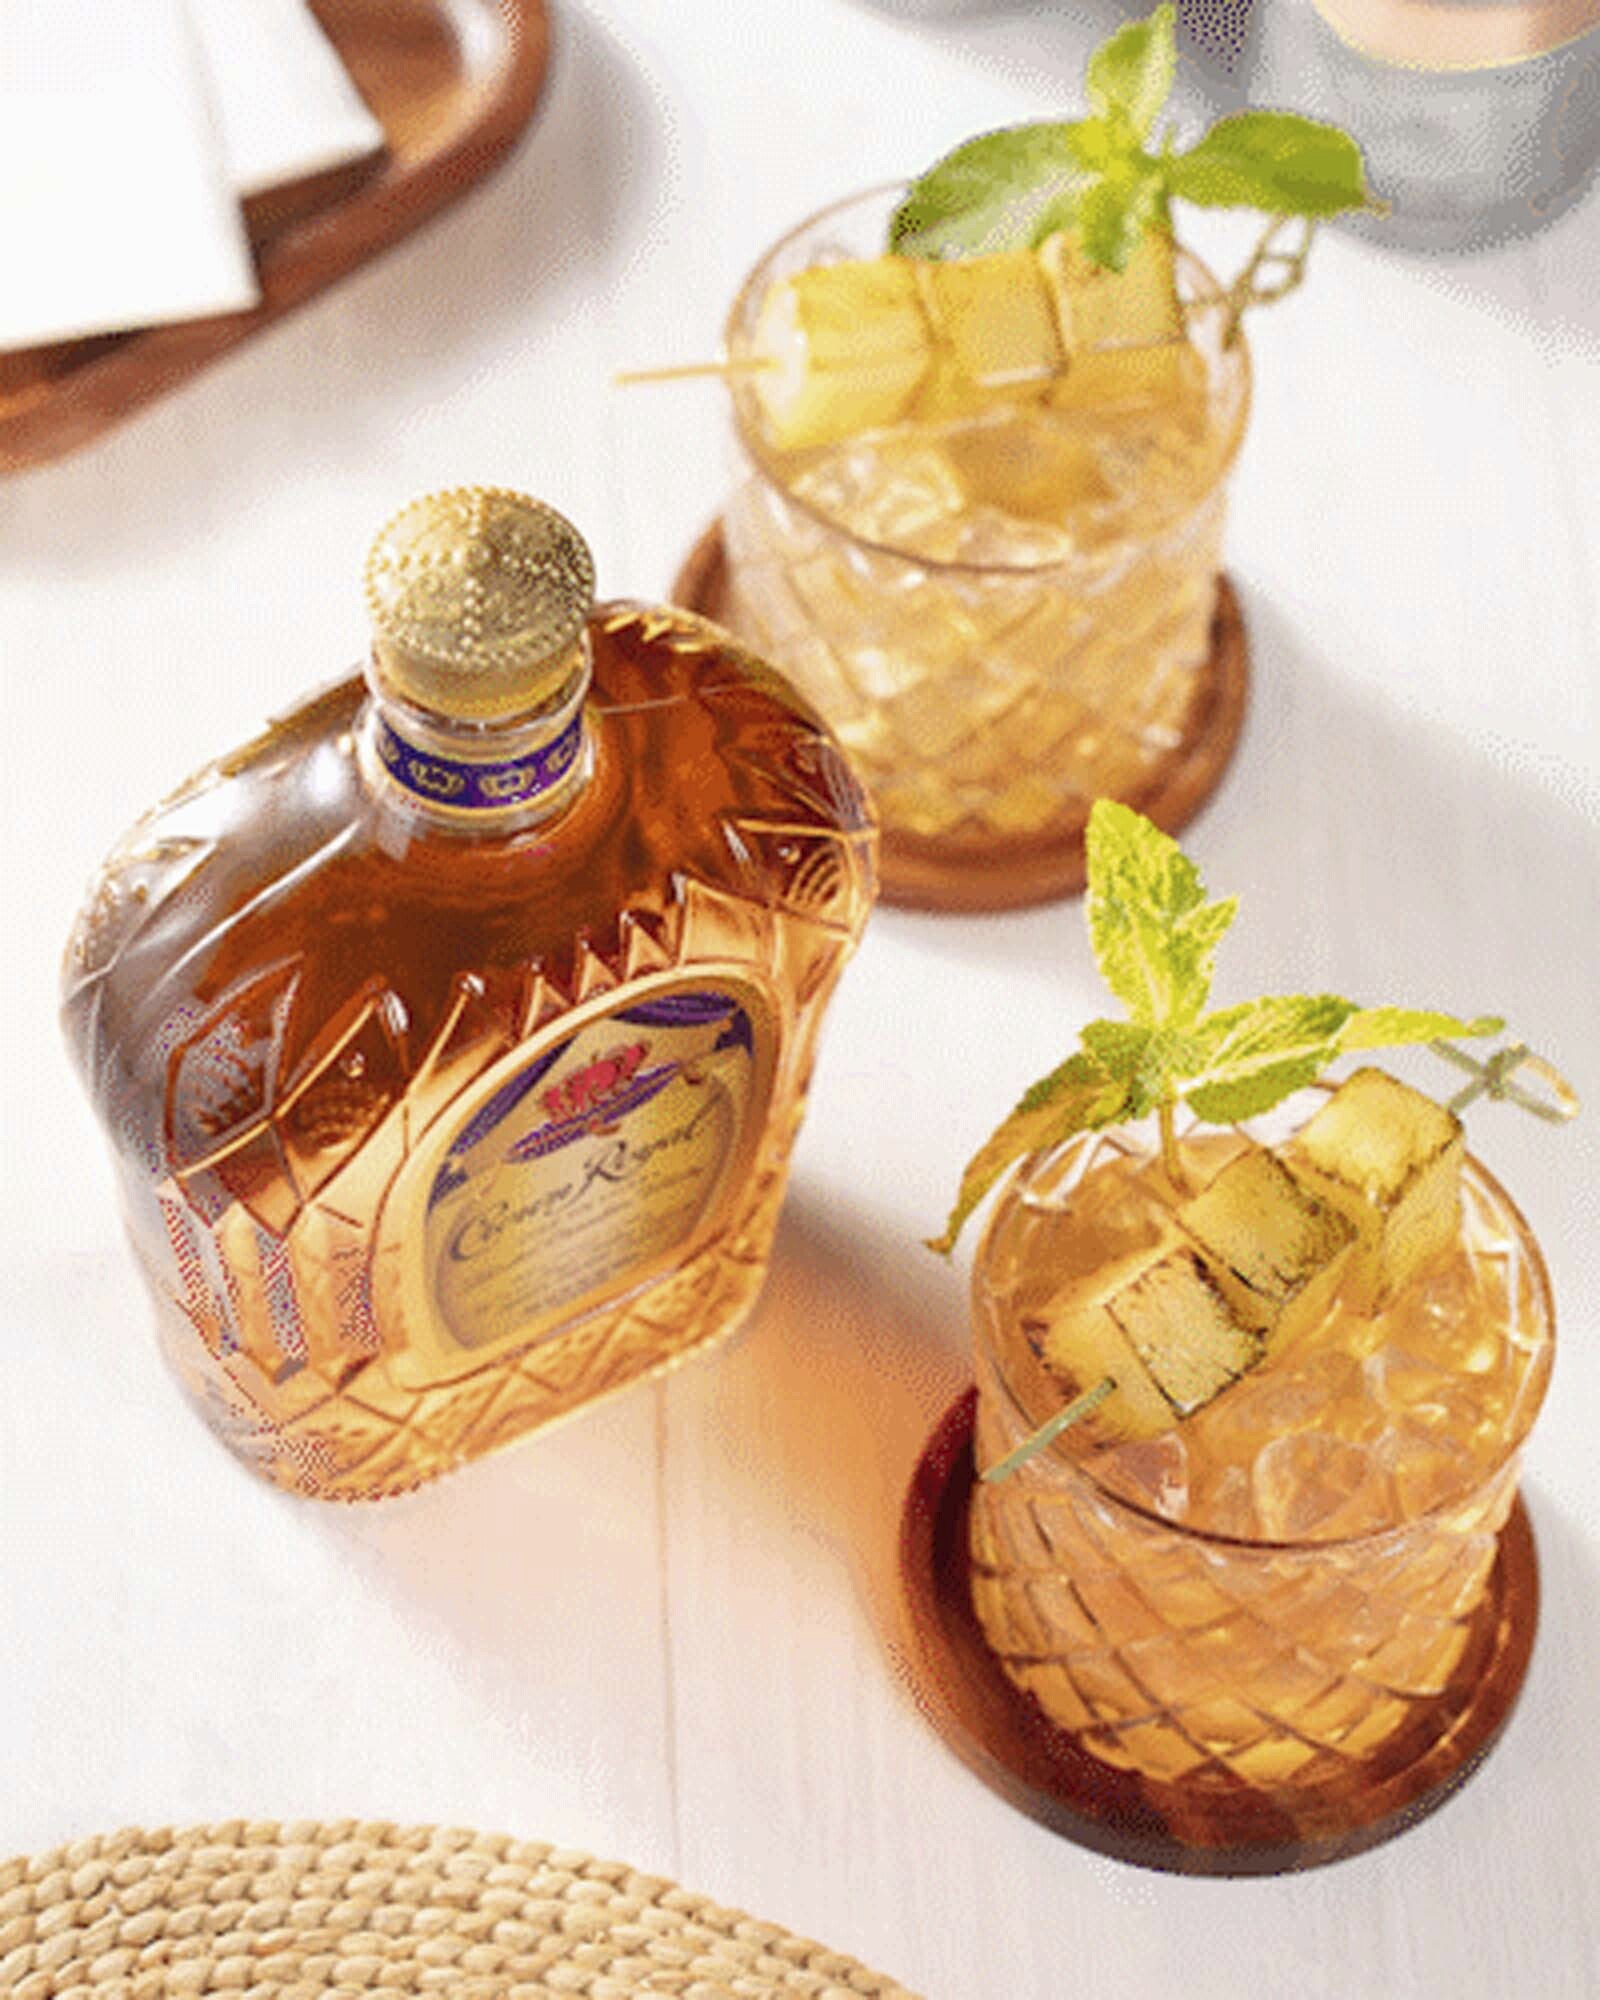 Crown Royal Pineapple Old Fashioned Whisky Cocktail